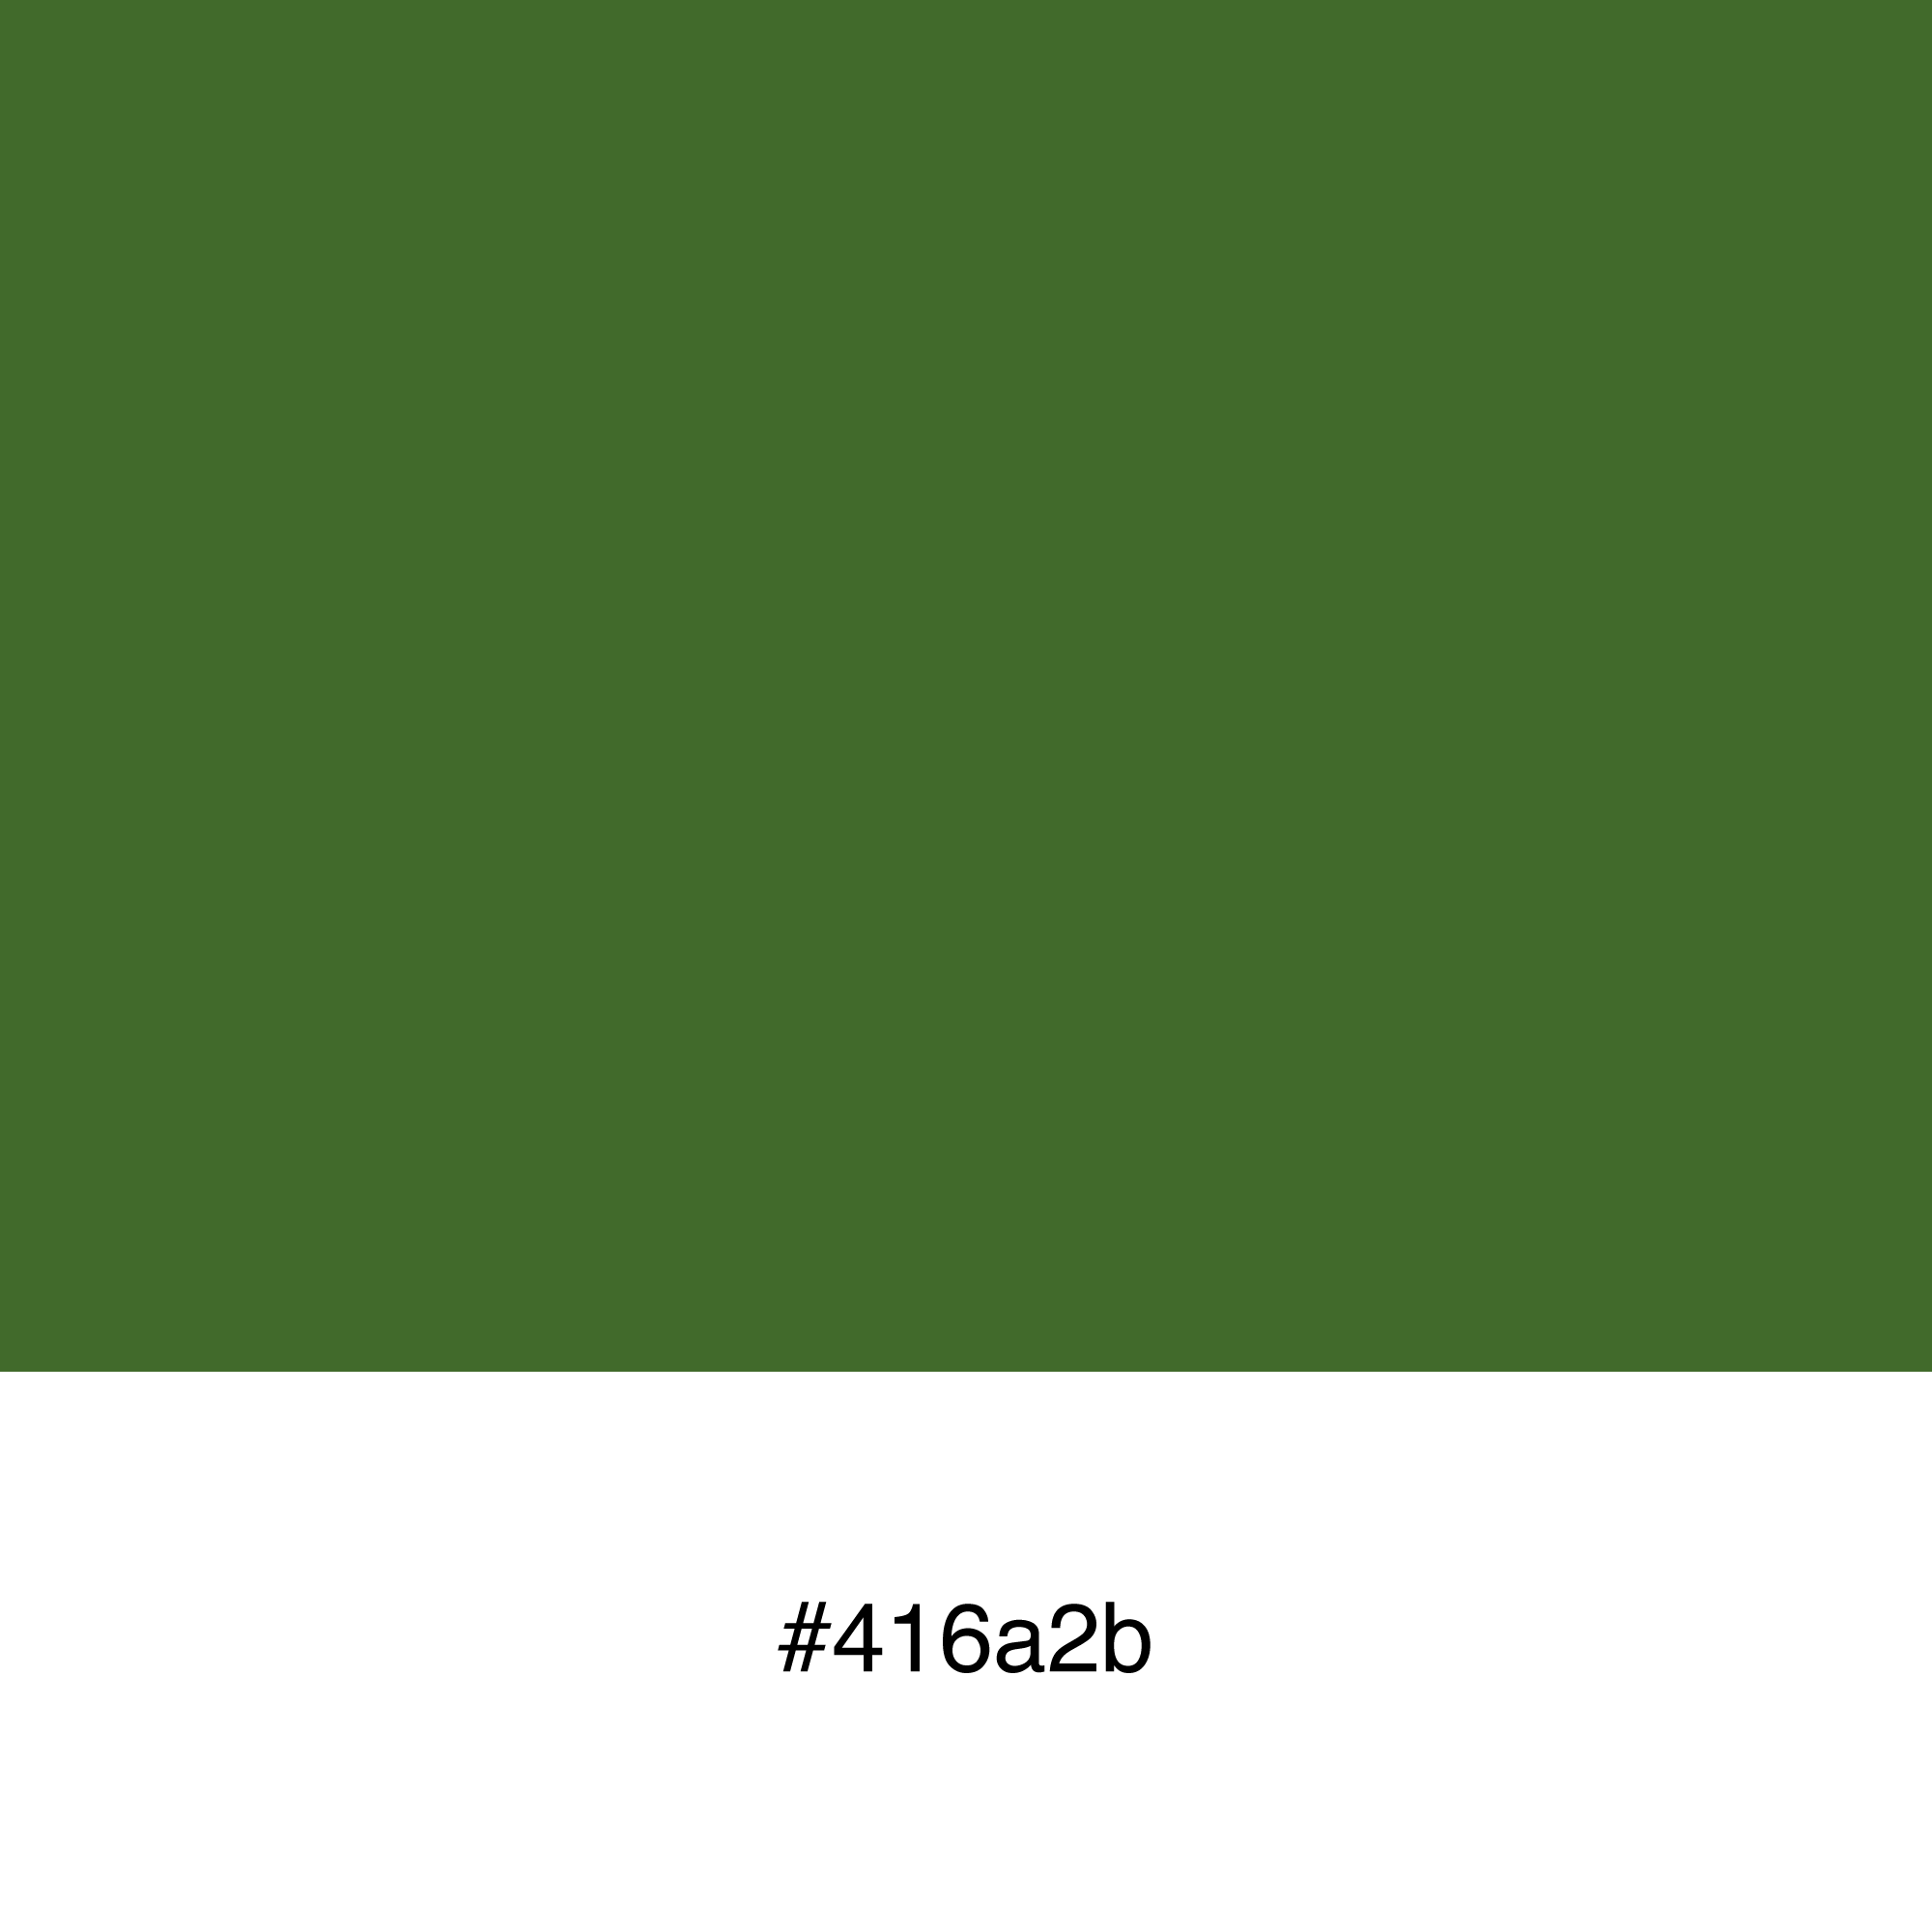 color-swatch-416a2b